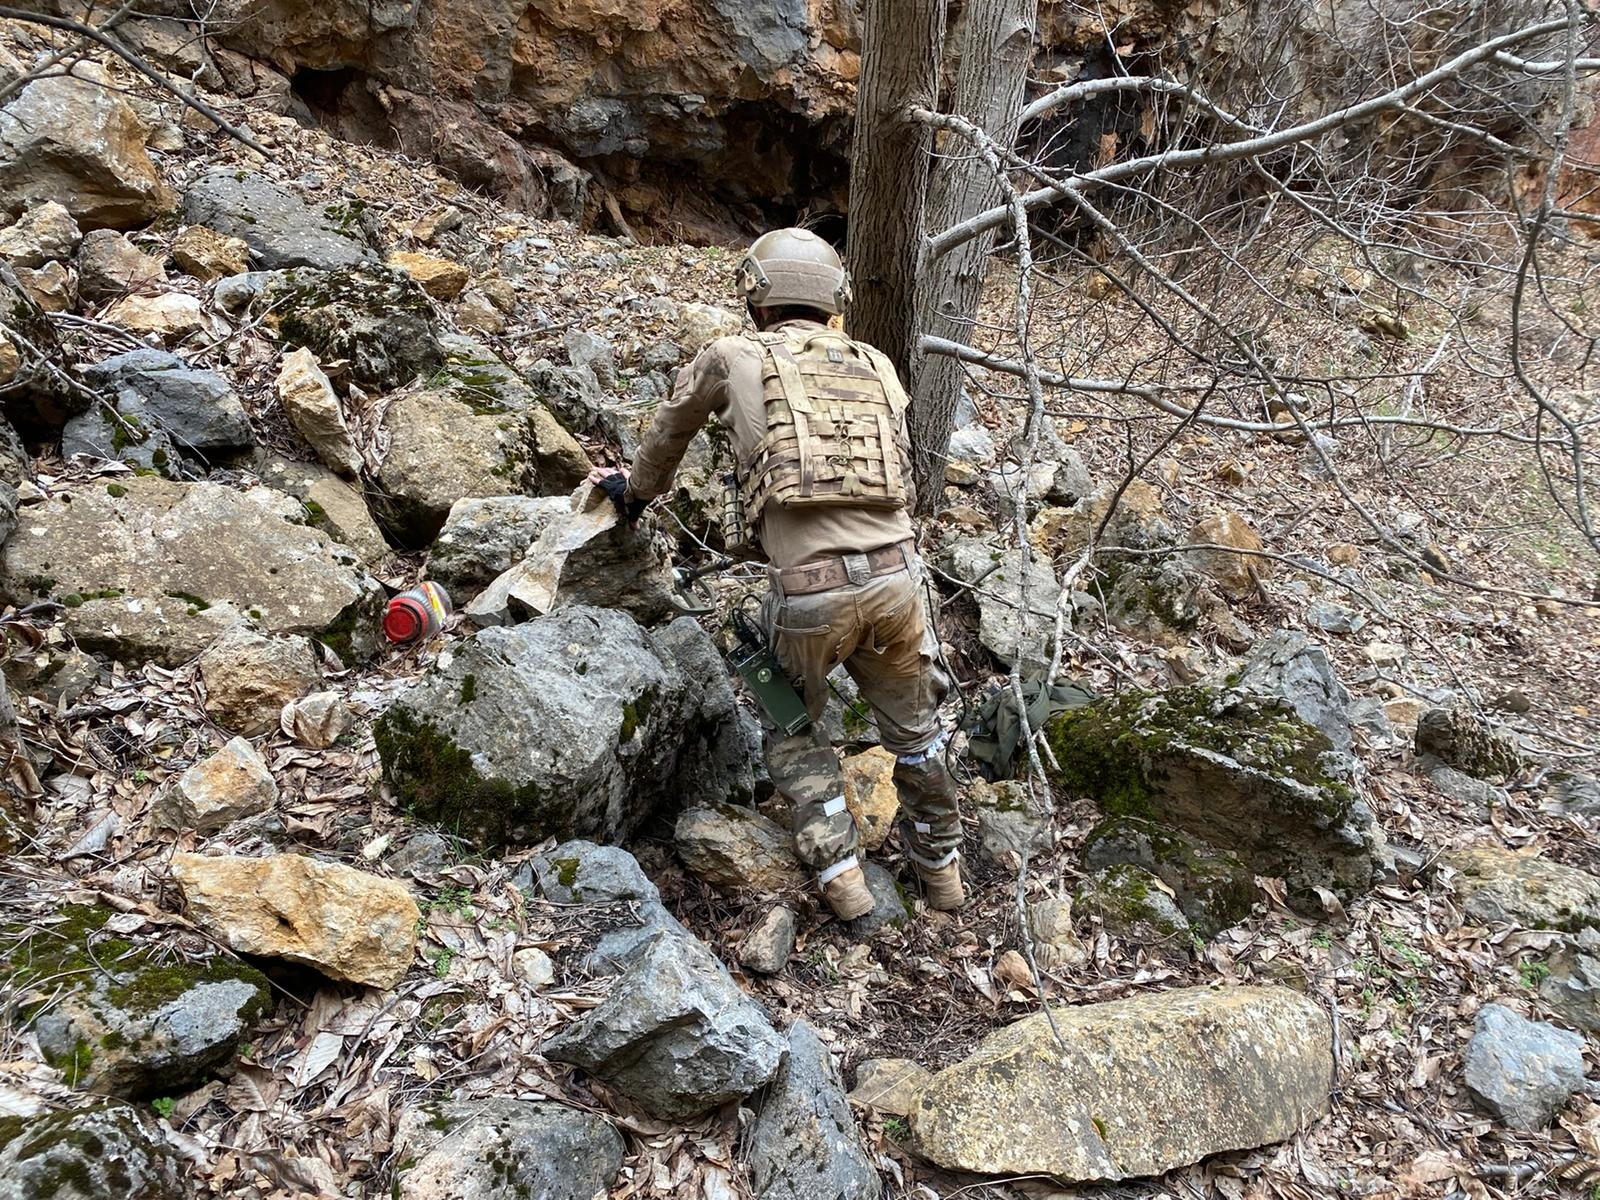 In Operation Eren-7 Mercan Munzur, 59 security teams composed of 1,062 personnel raided hideouts in Tunceli province, Turkey, March 25, 2021. (DHA)